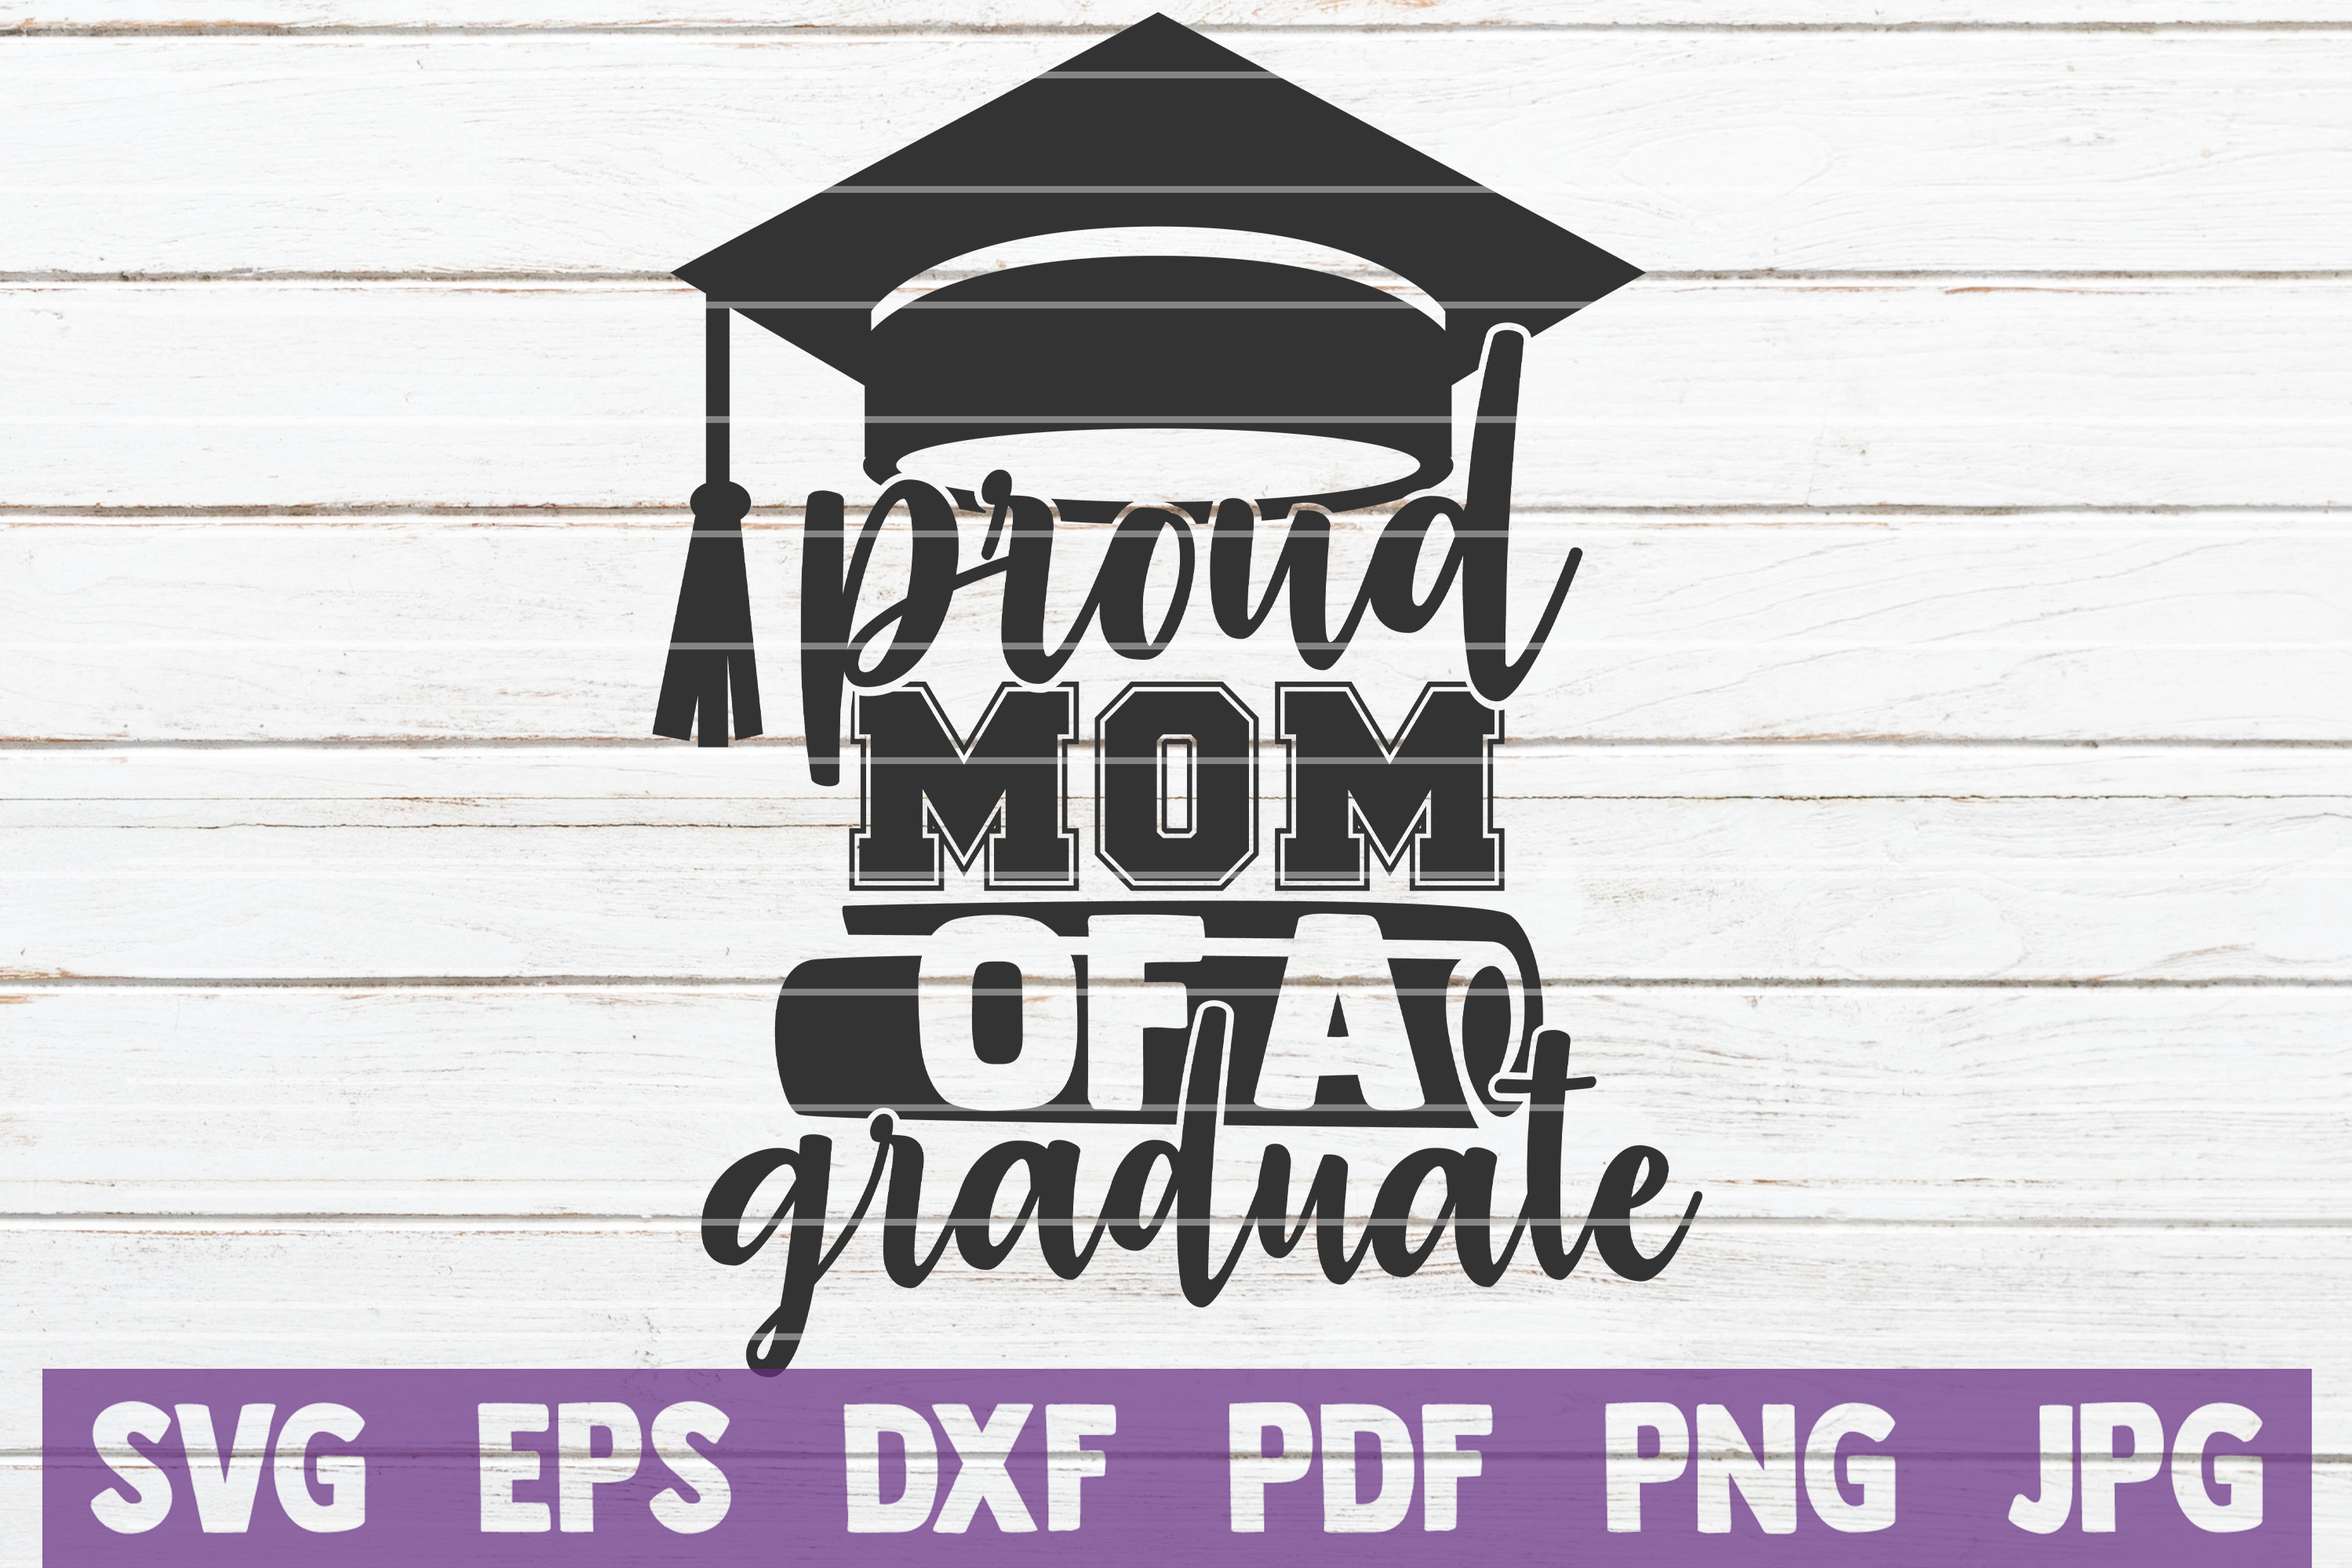 Download Free Proud Mom Of A Graduate Svg Cut File Graphic By for Cricut Explore, Silhouette and other cutting machines.